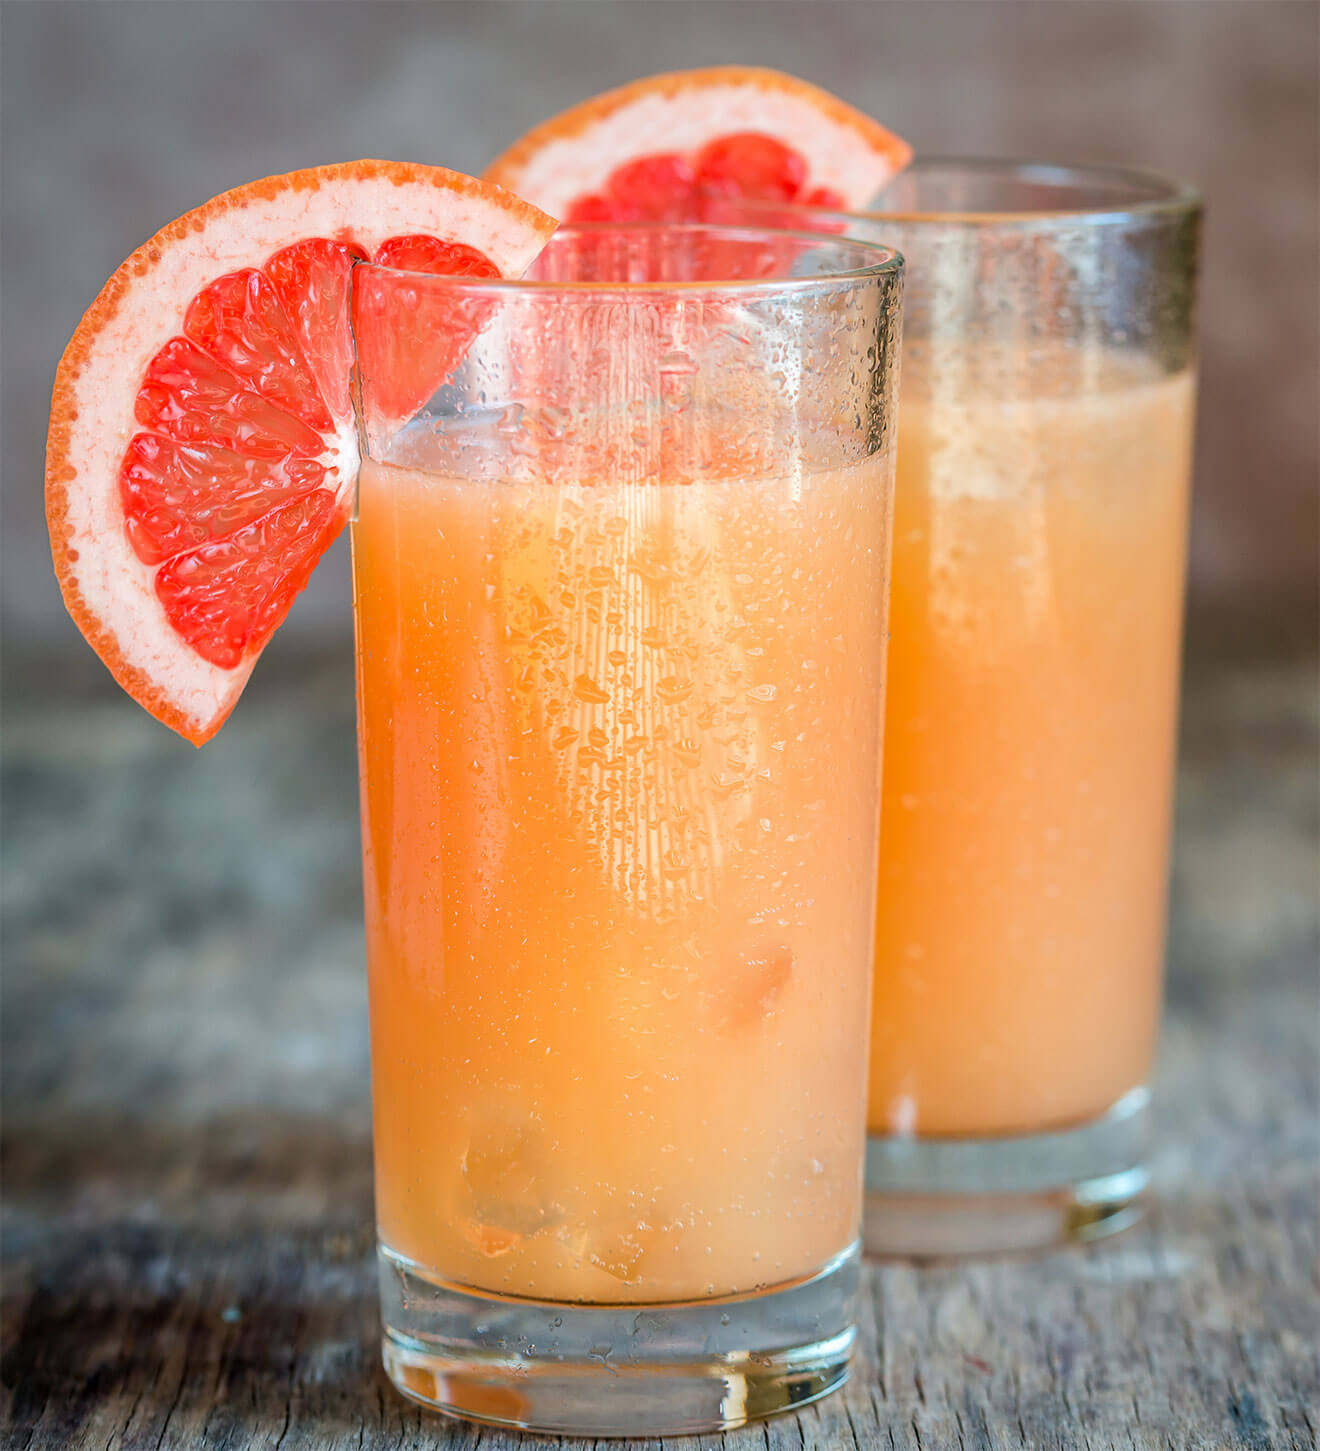 The Best Mixers for Tequila, cocktails with grapefruit garnish